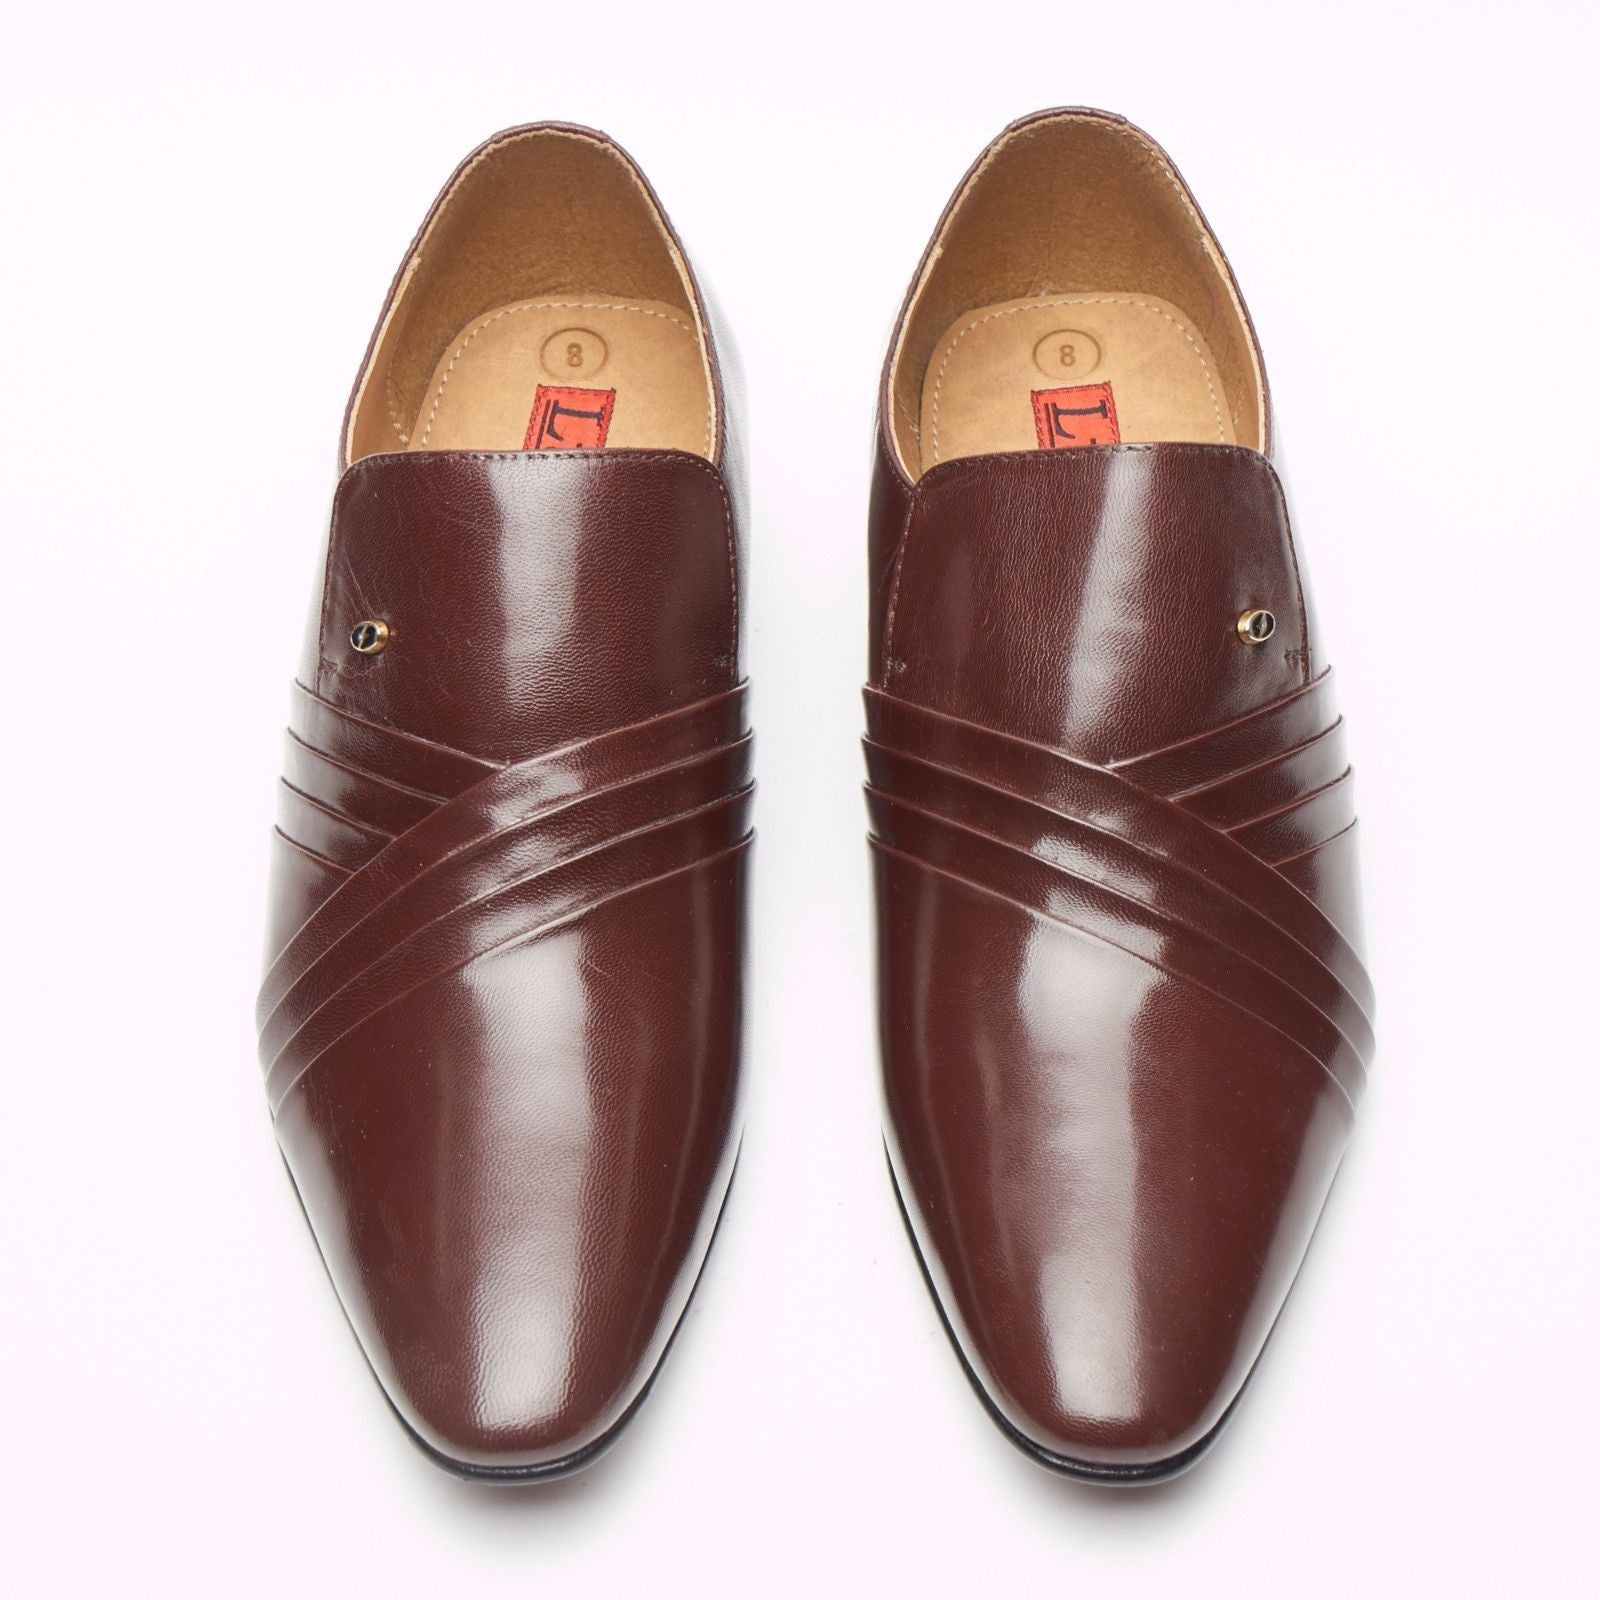 Mens Leather Spanish Shoes - 33452